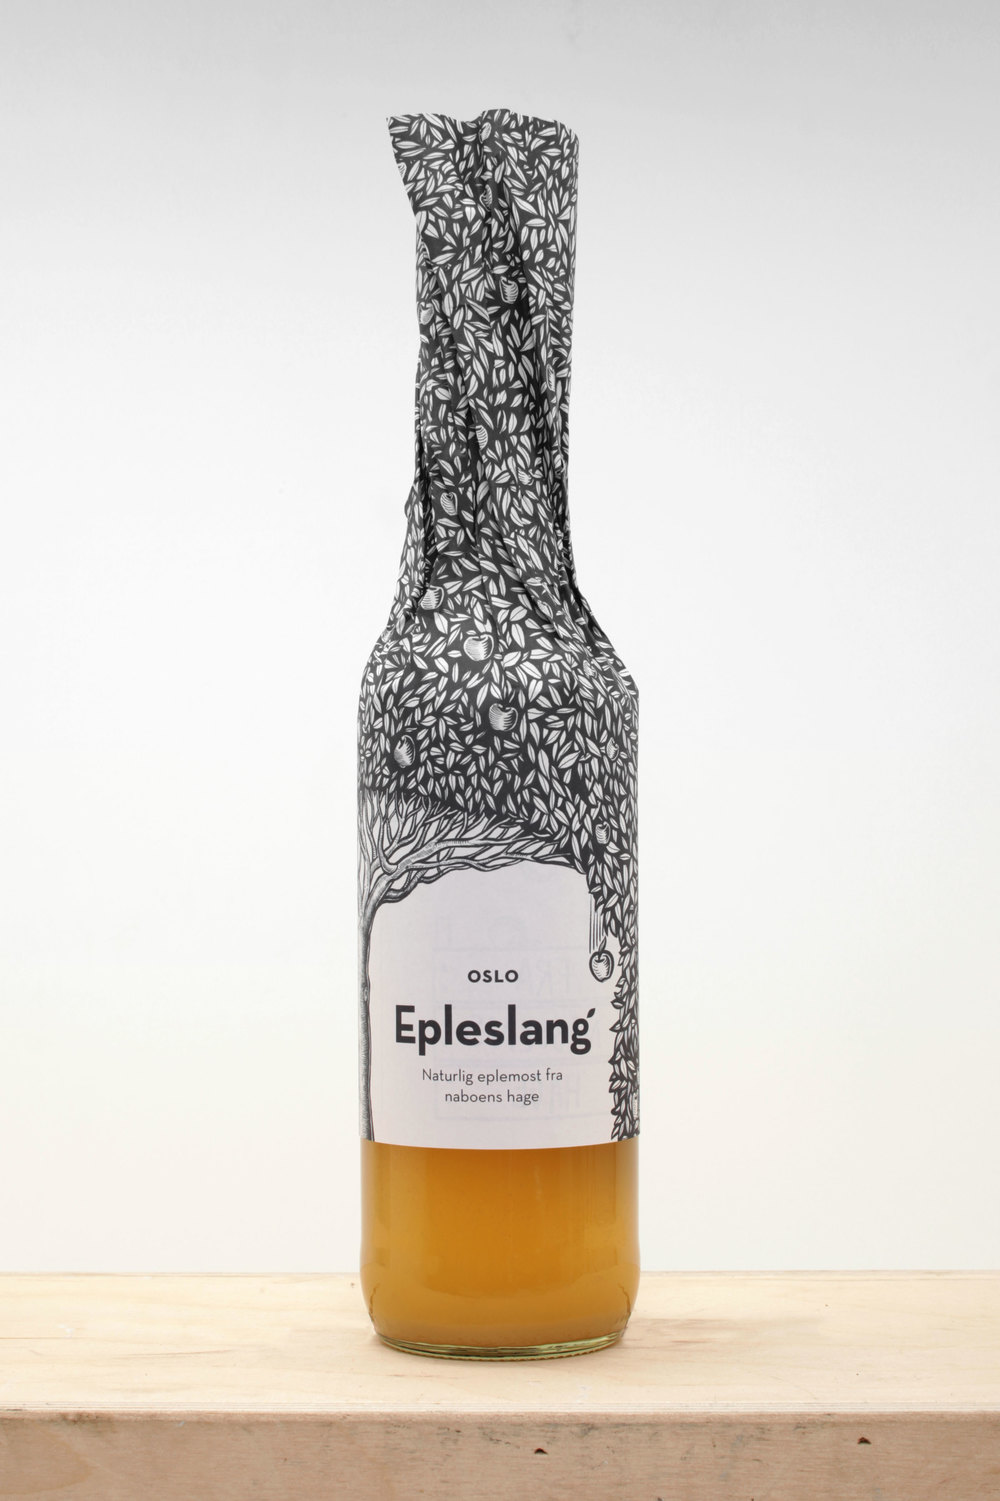 Epleslang packaging design by Dinamo Design